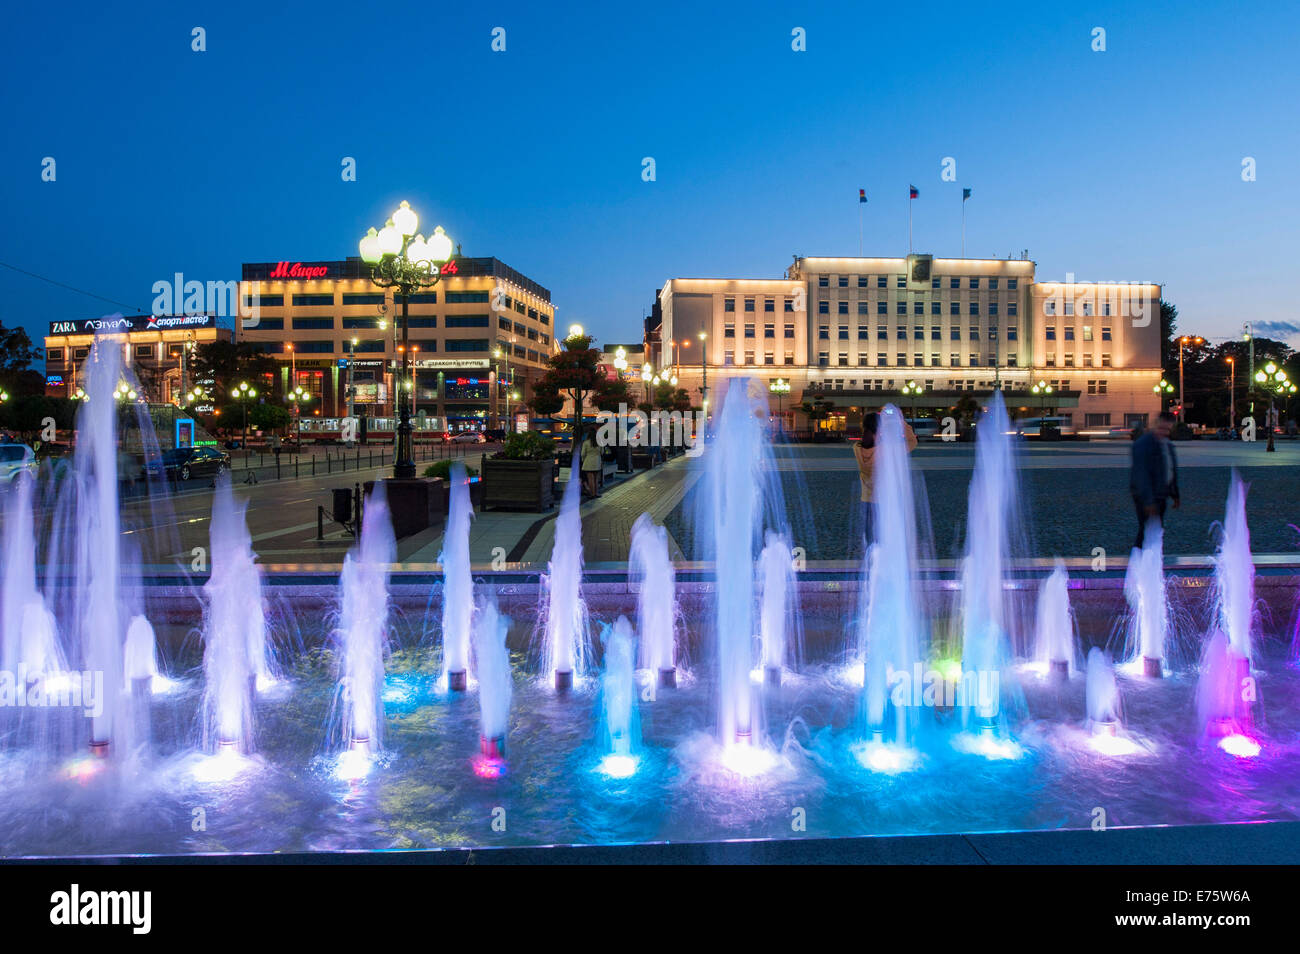 Victory Square, fountains in the evening, the Town Hall of 1923 and department stores at the back, Centralnij rajon, - Stock Image